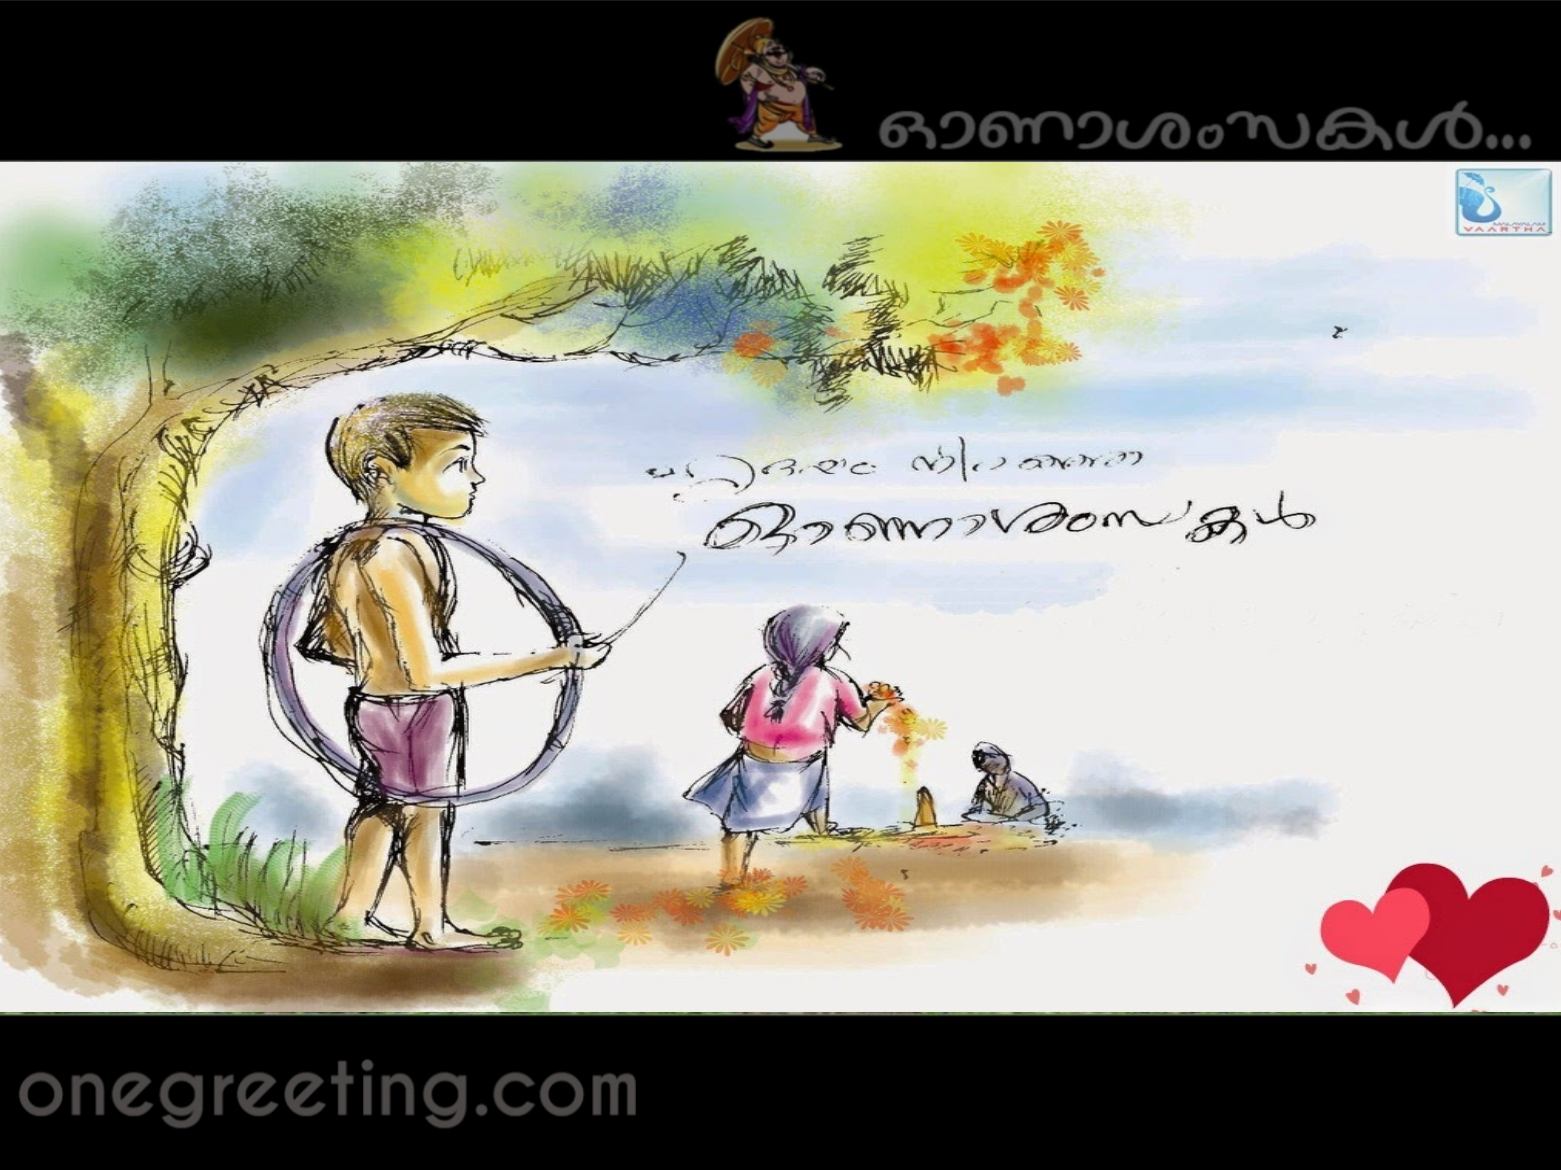 9 Beautiful Onam Greeting Card Designs And Onam Wishes One Greeting